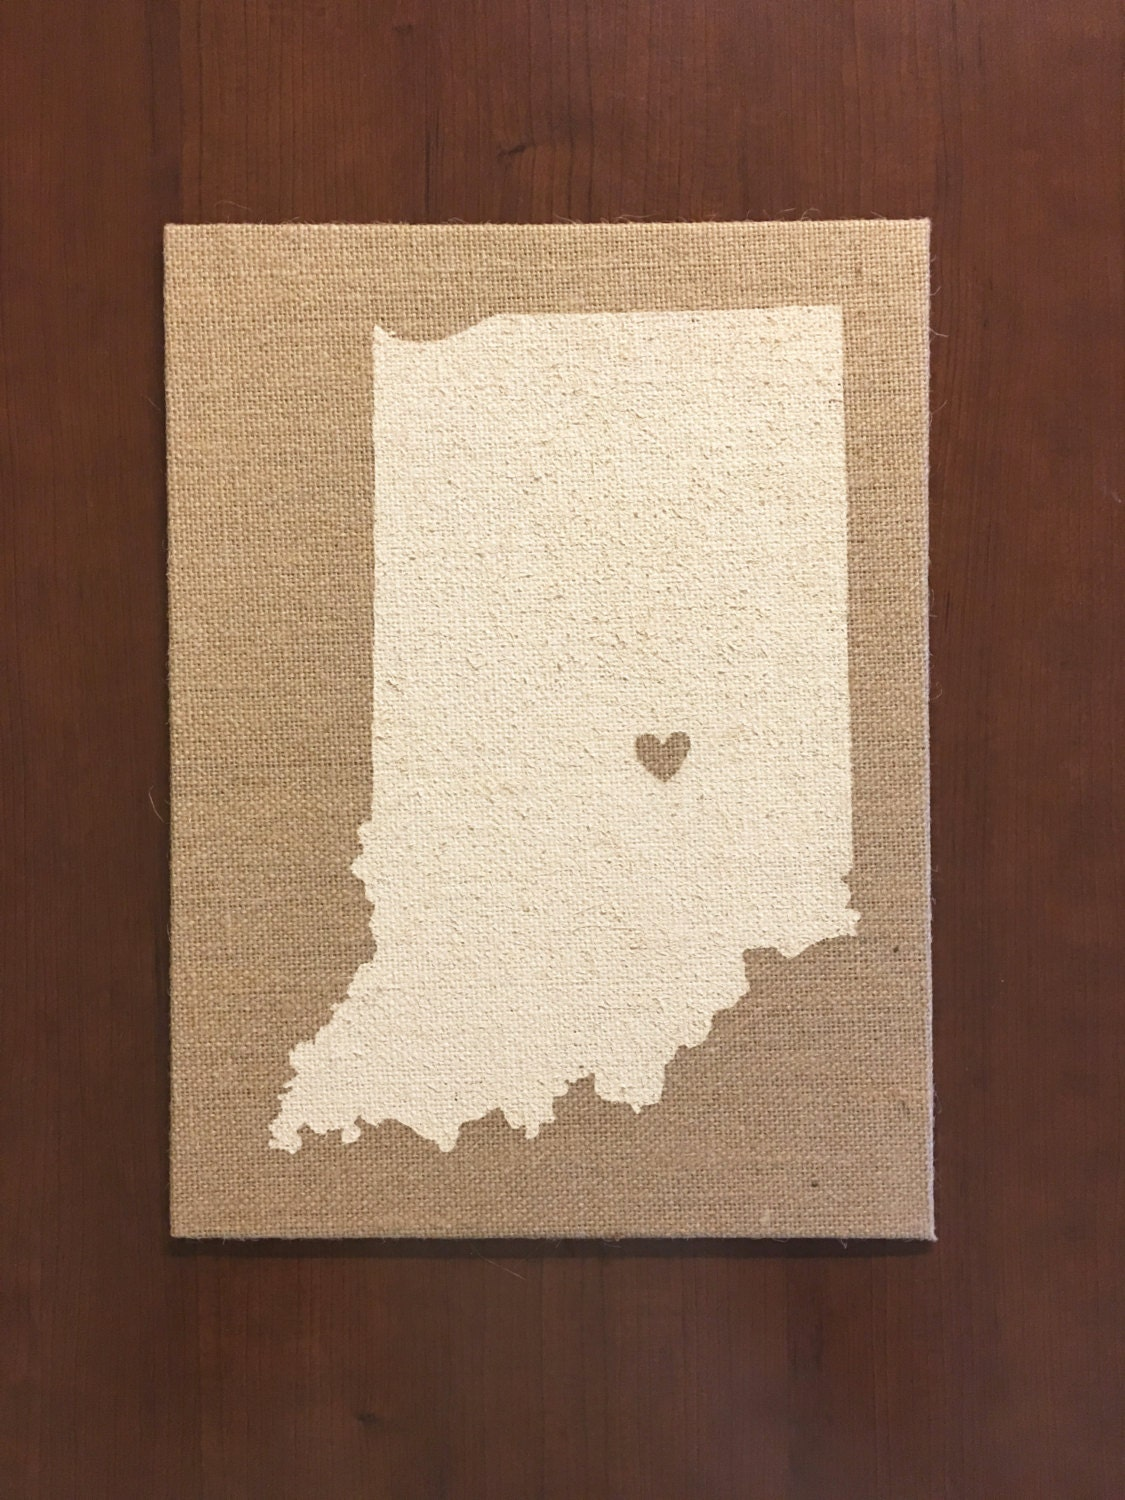 home decorators locations illinois your state and location home decor by kaysmithdesign on etsy 11501